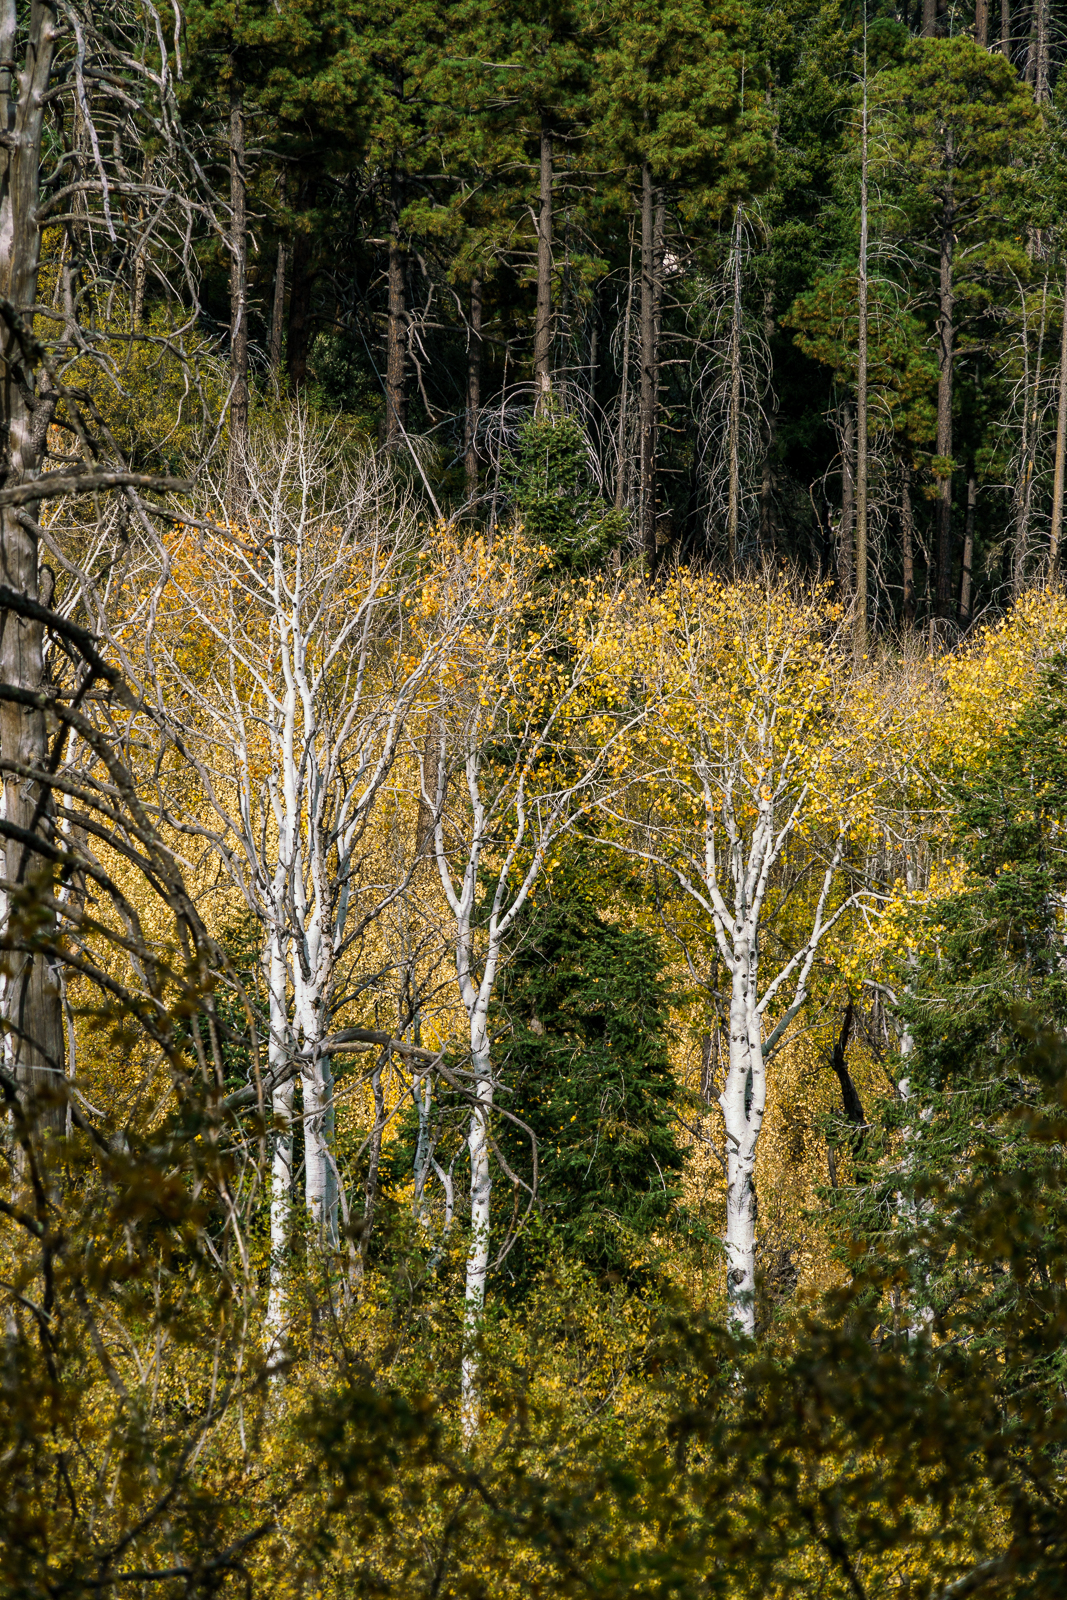 Last fall colors in the Aspens from the Aspen Trail. October 2016.